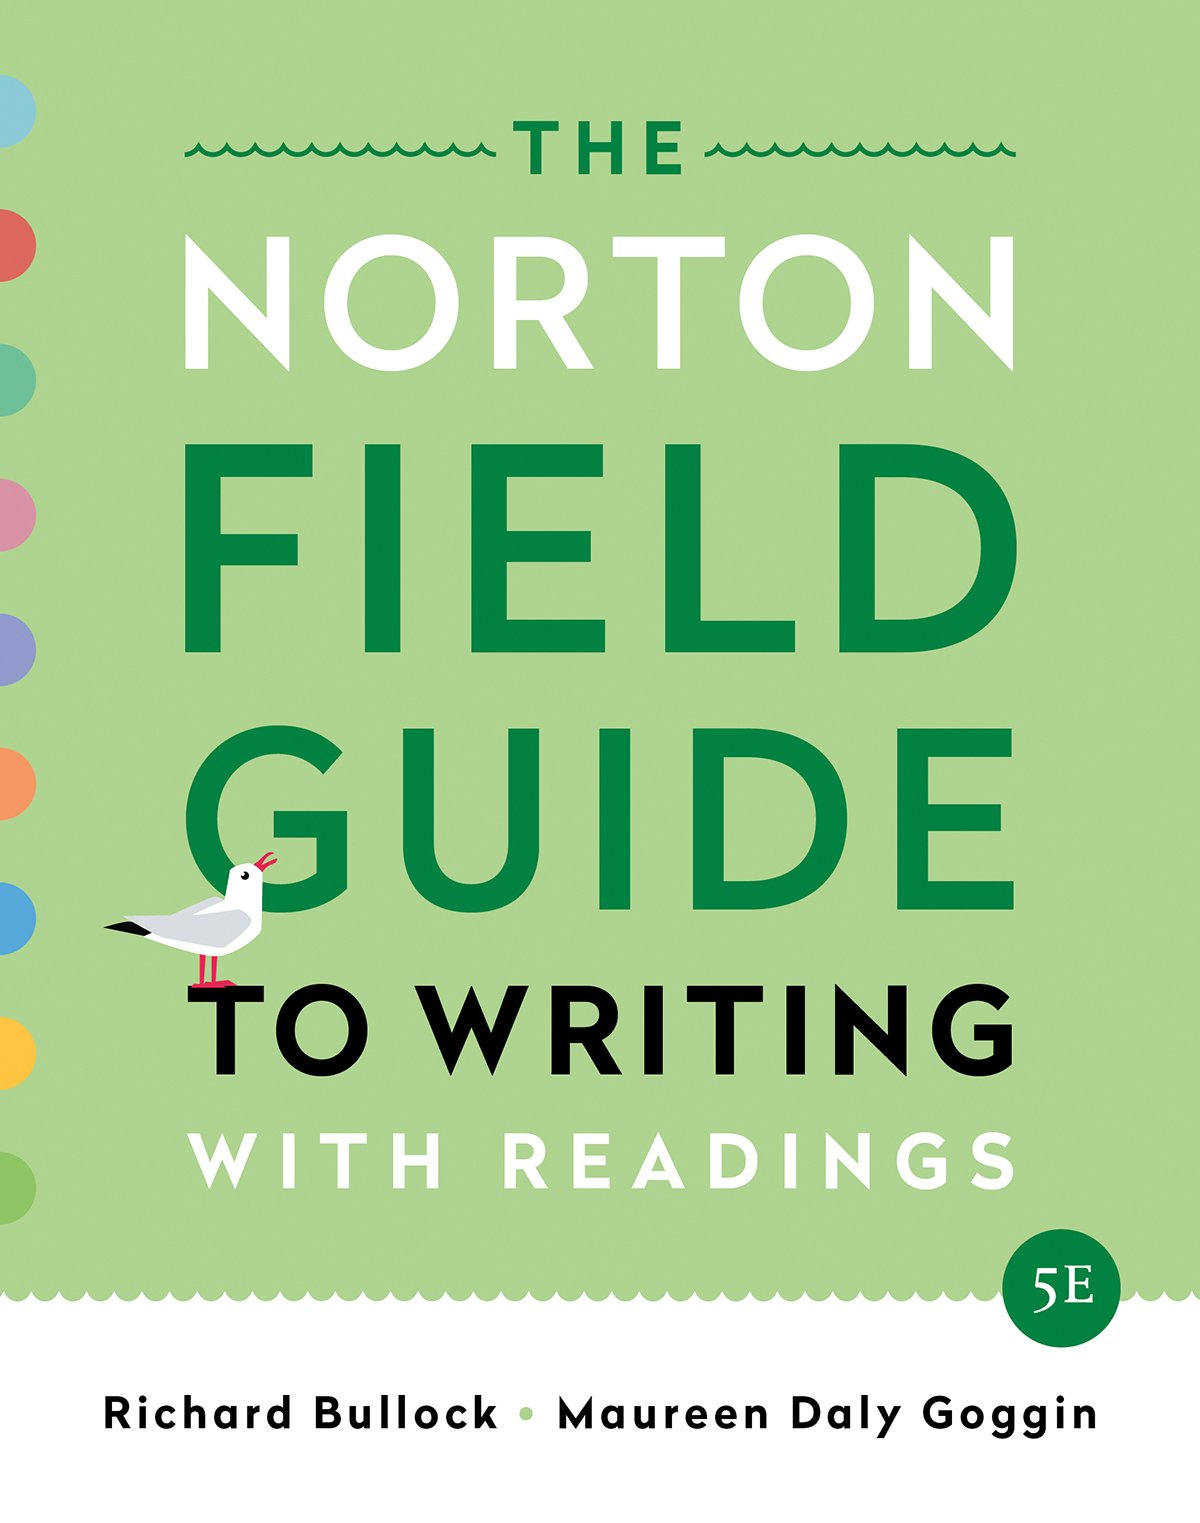 The Norton Field Guide to Writing: with Readings (Fifth Edition) by W. W. Norton & Company